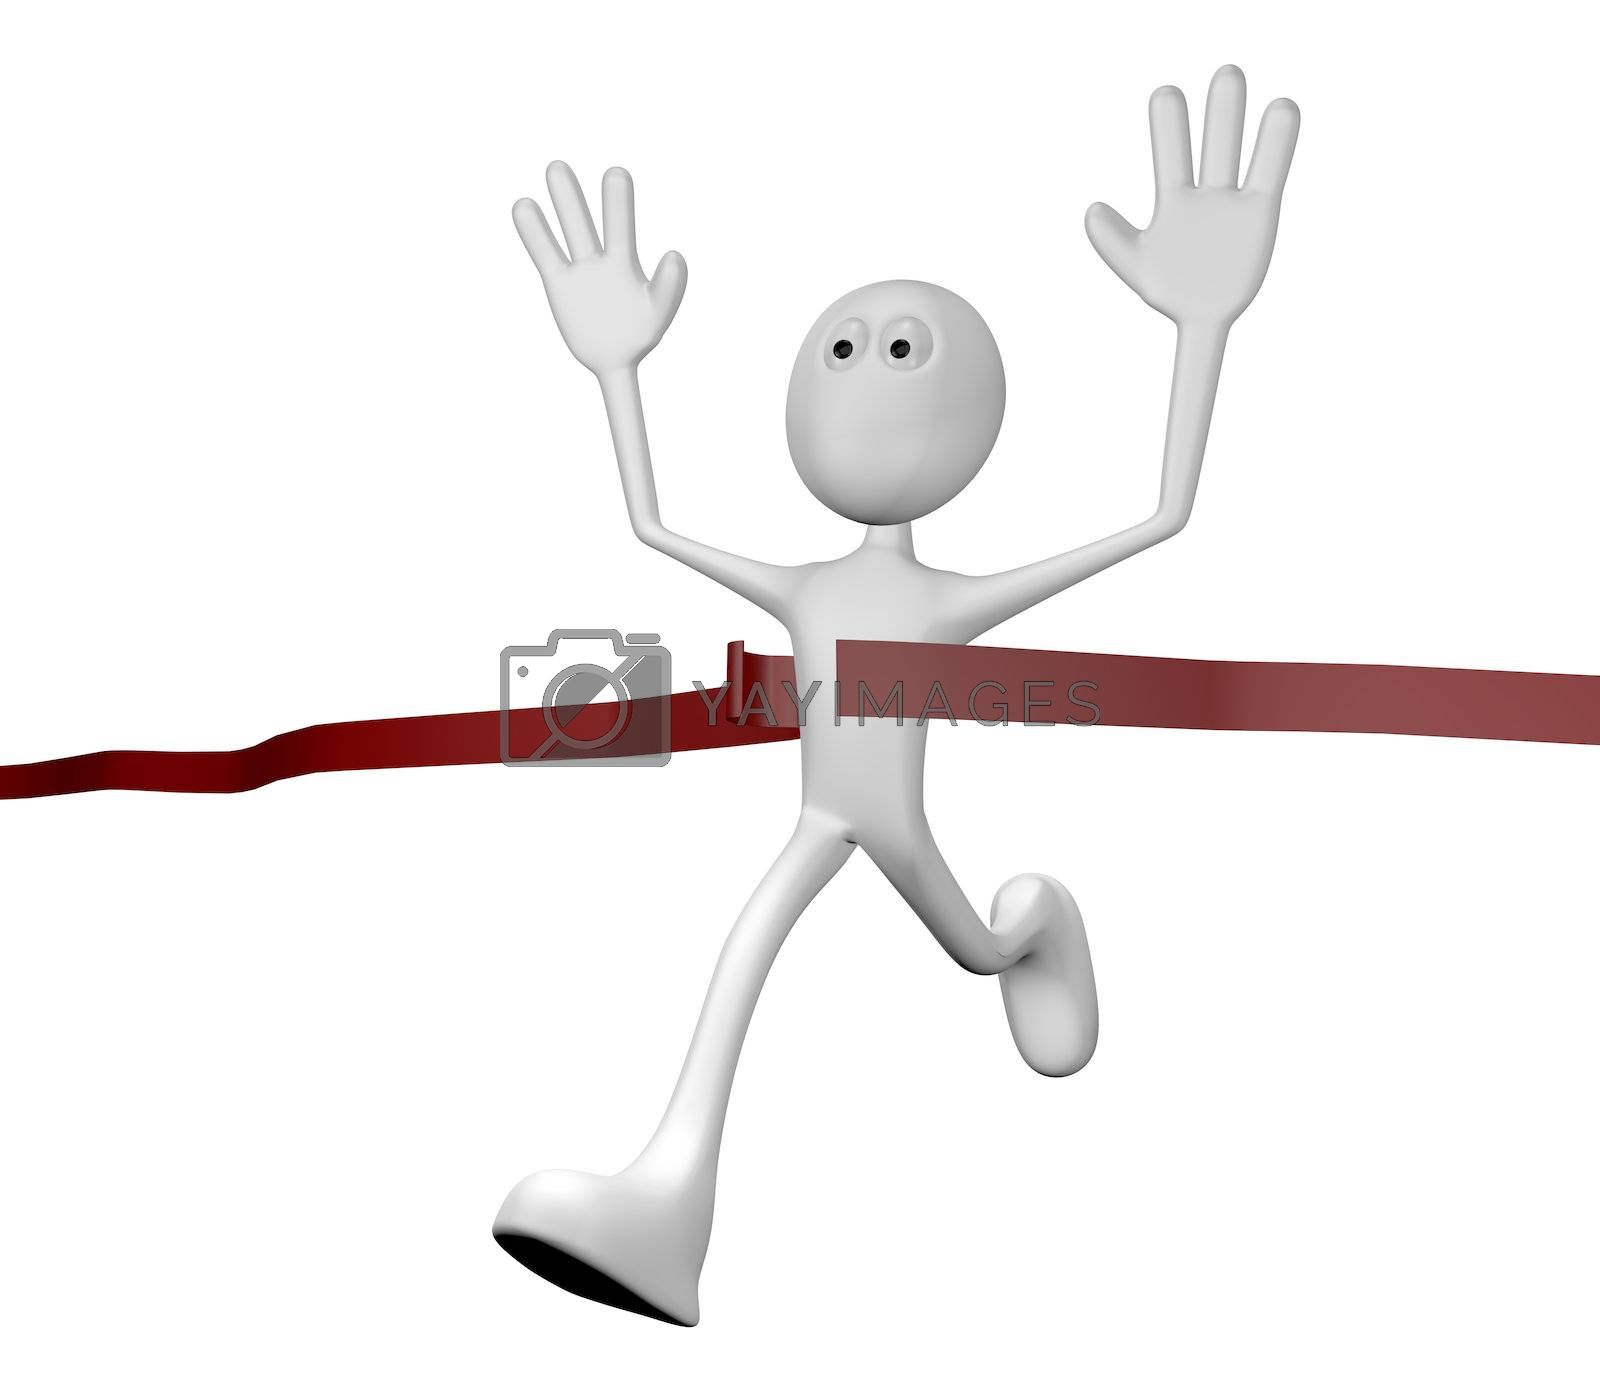 cartoon character crossing the finishing line - 3d illustration